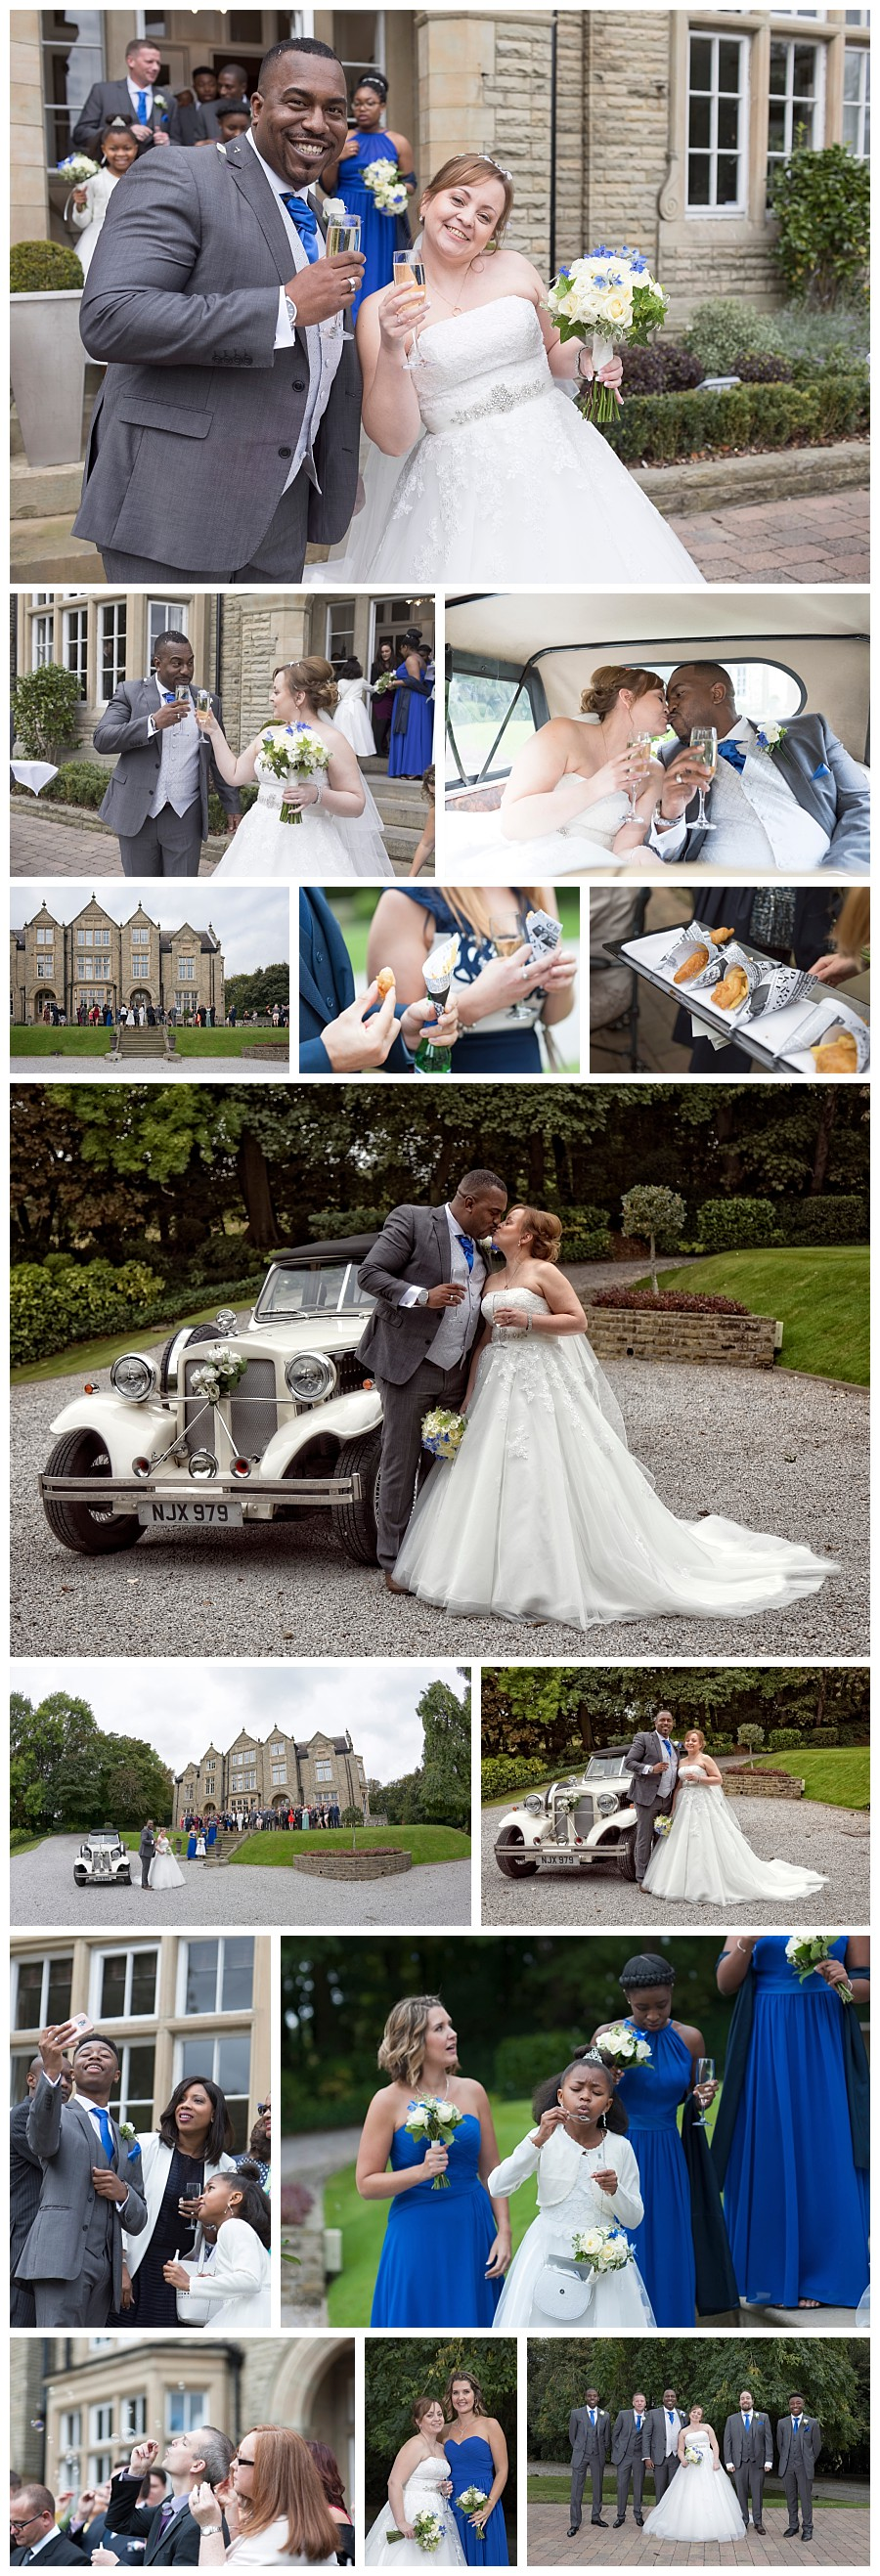 Wedding Photography Woodlands Hotel Leeds, recommended wedding photographers Woodlands hotel Leeds, bride & groom wedding photos woodlands hotel